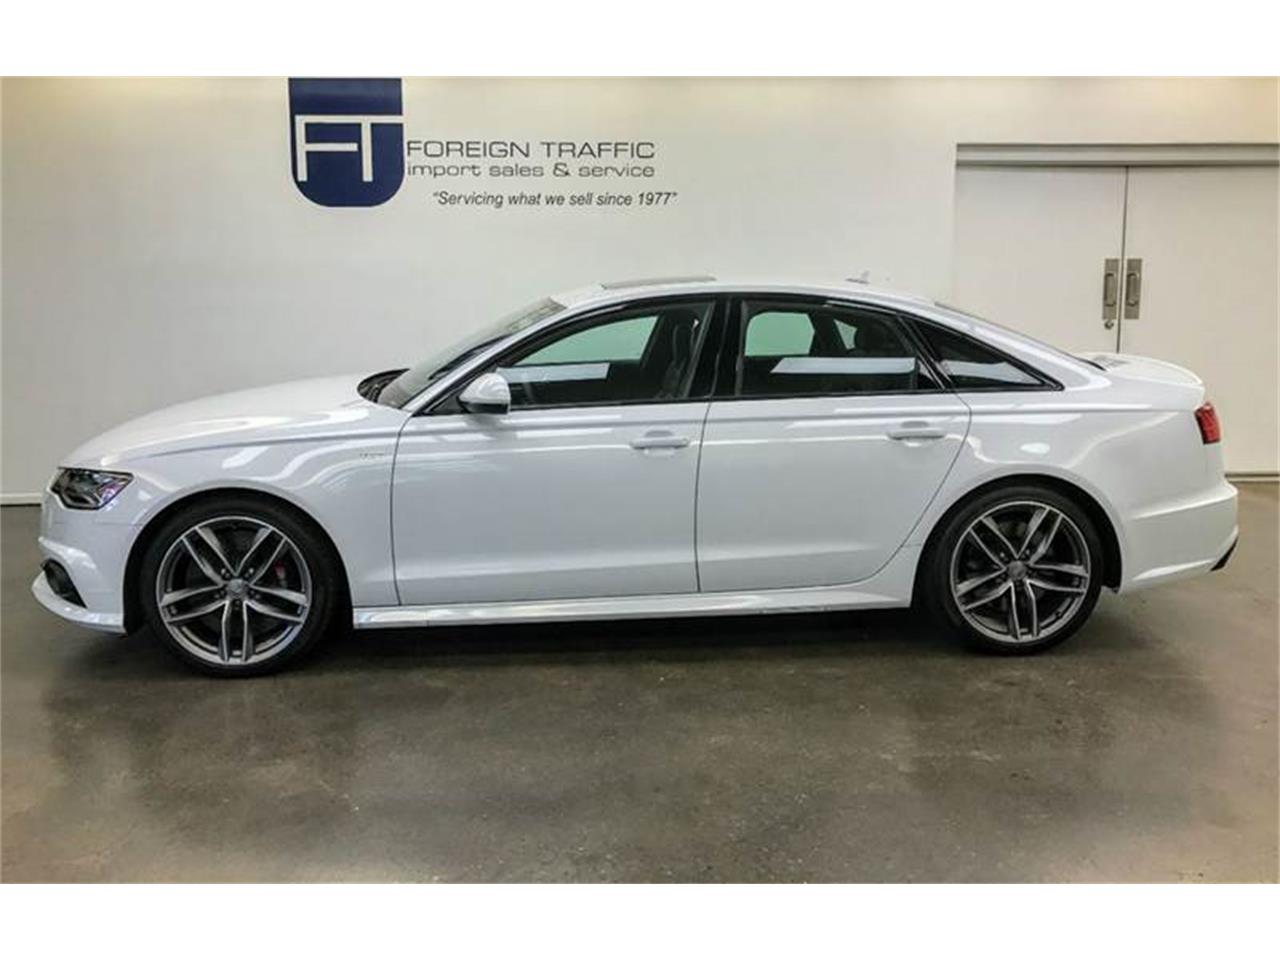 Large Picture of '16 Audi S6 - $59,950.00 - L5SV